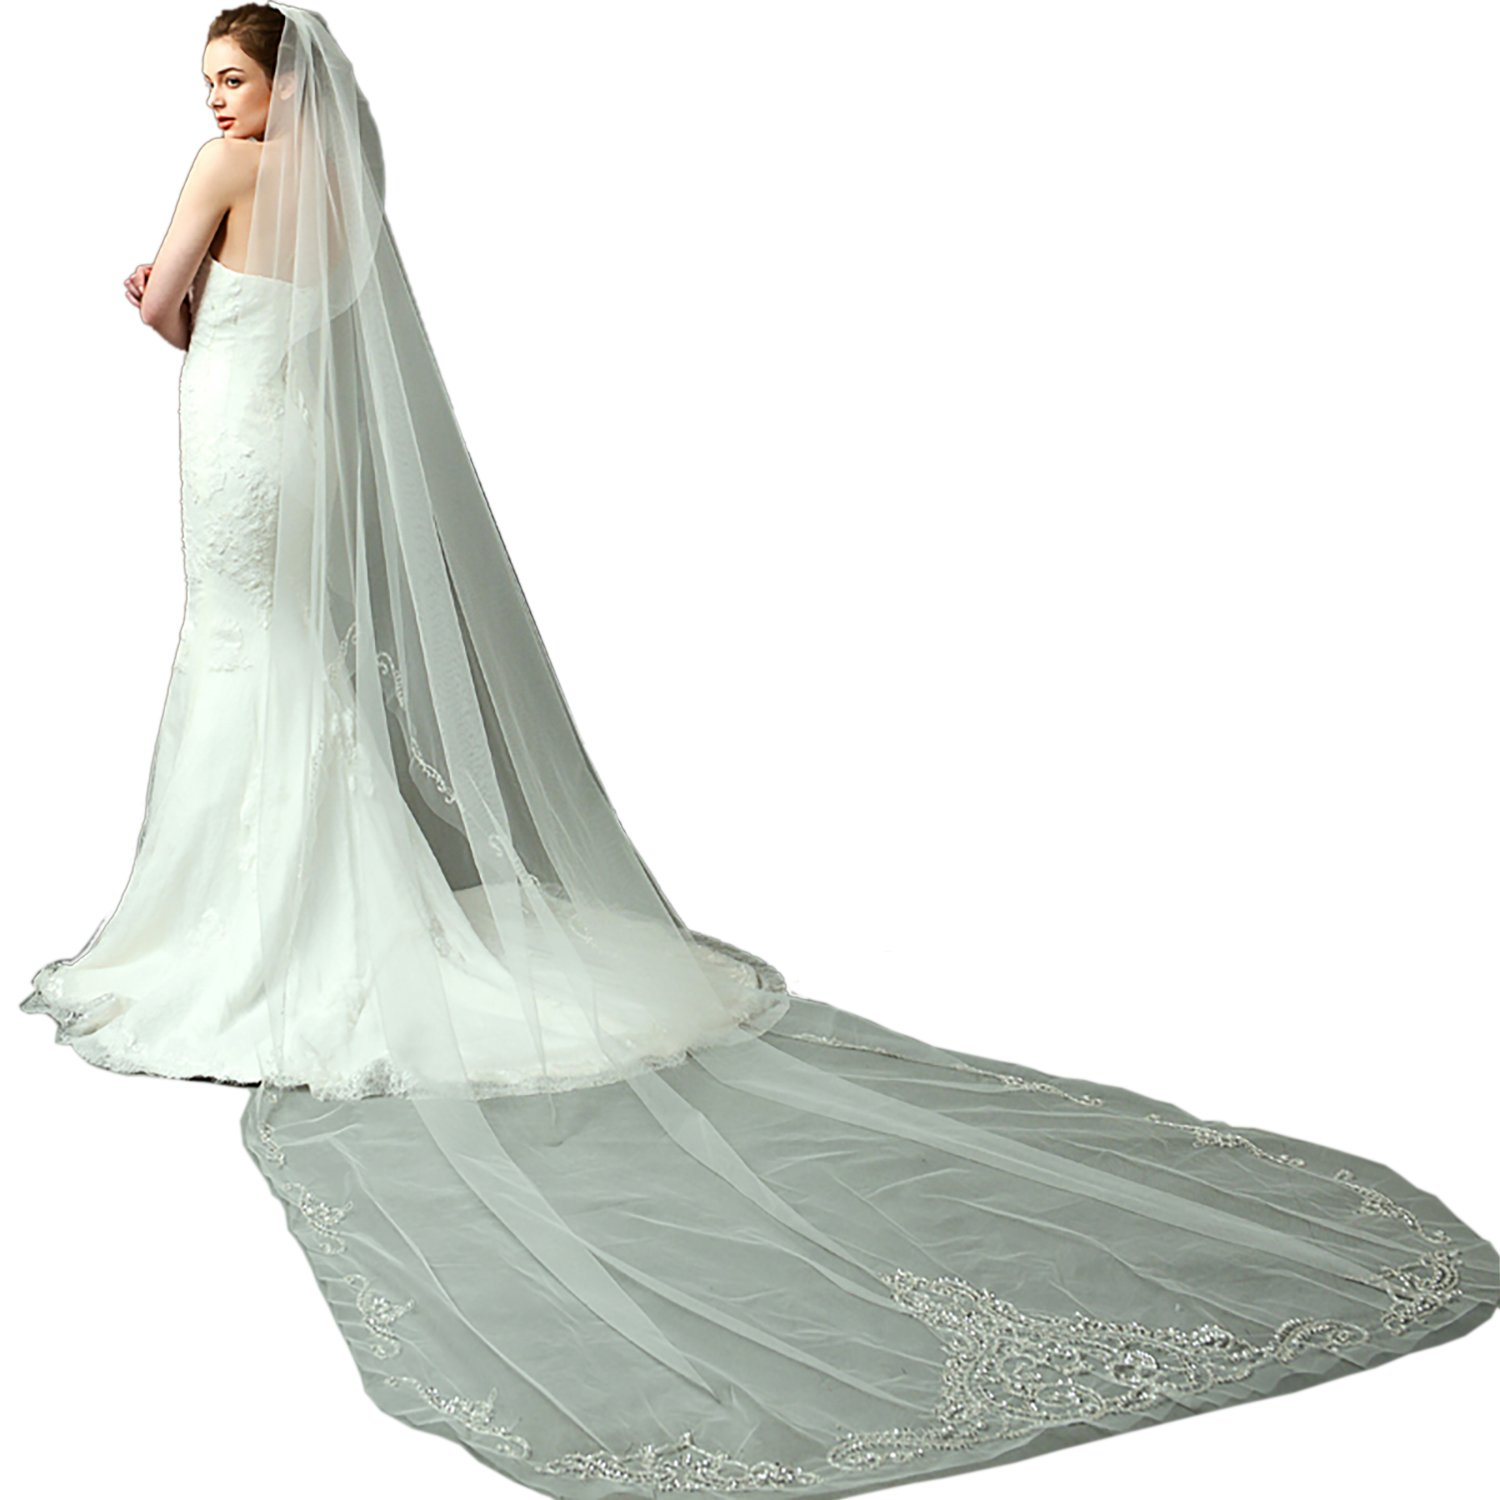 LynnBridal One Tier Cathedral Length Wedding Veil with Beaded Embroidery